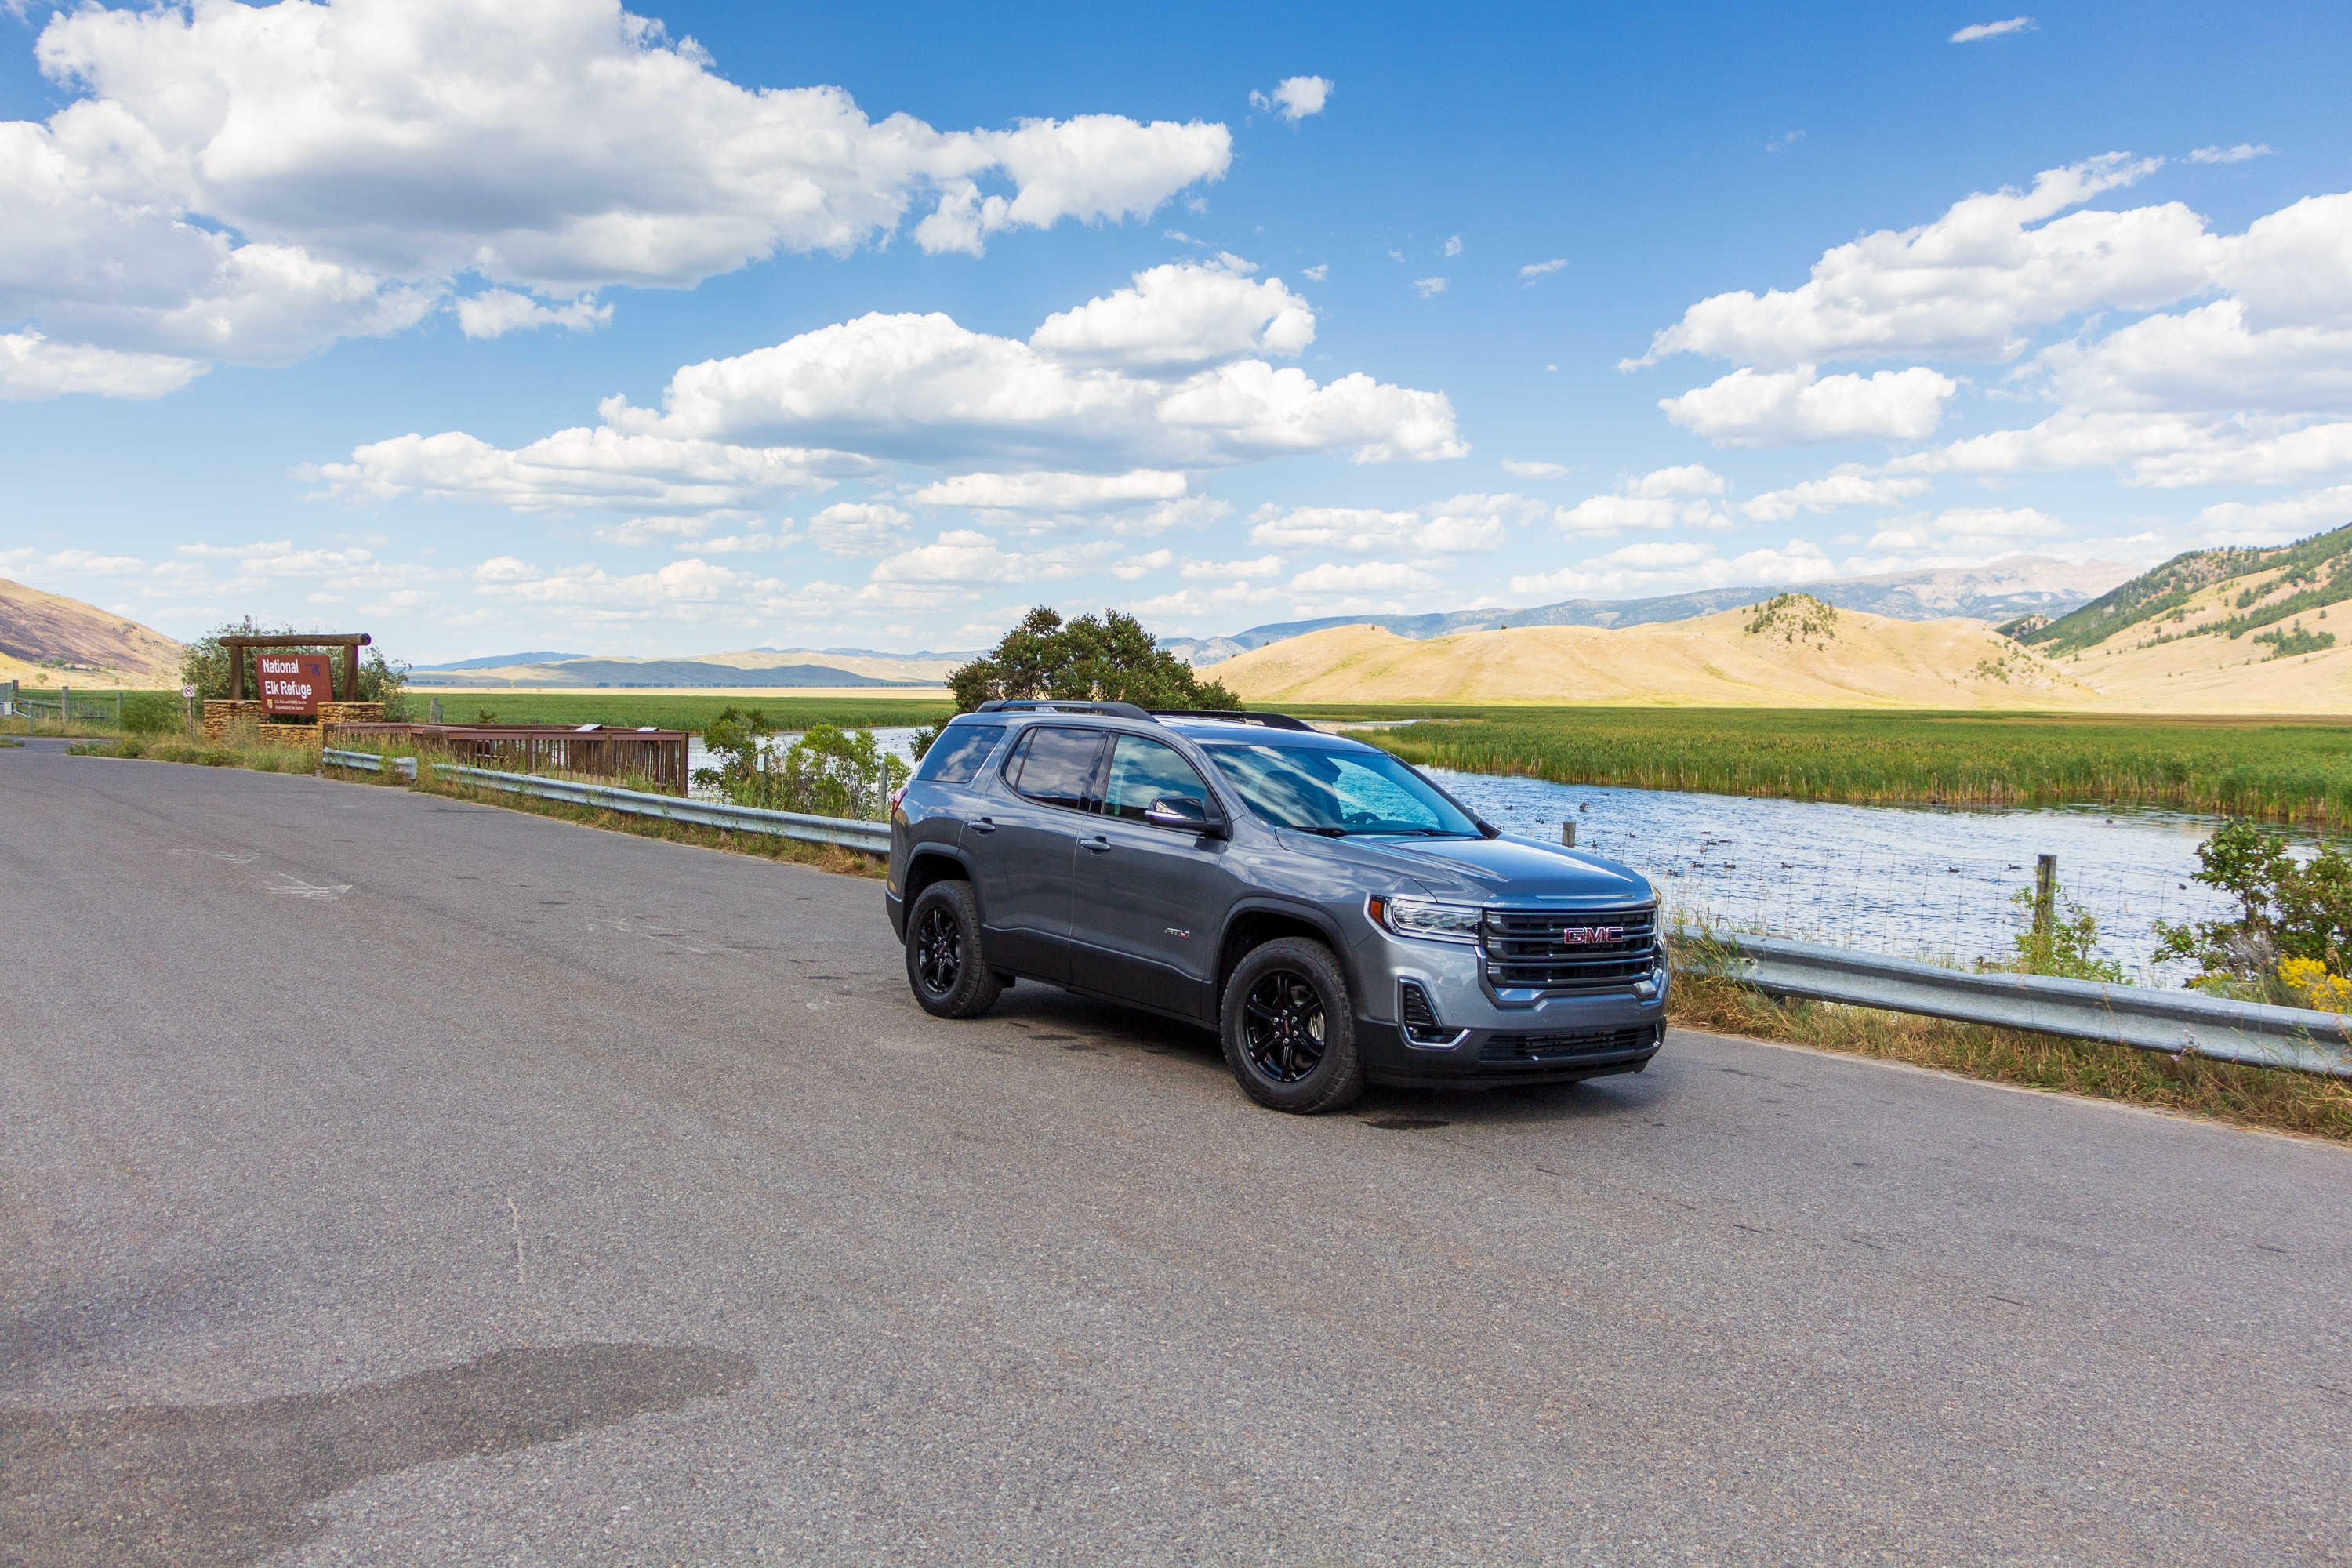 First Drive: 2020 GMC Acadia AT4 - GM Inside News